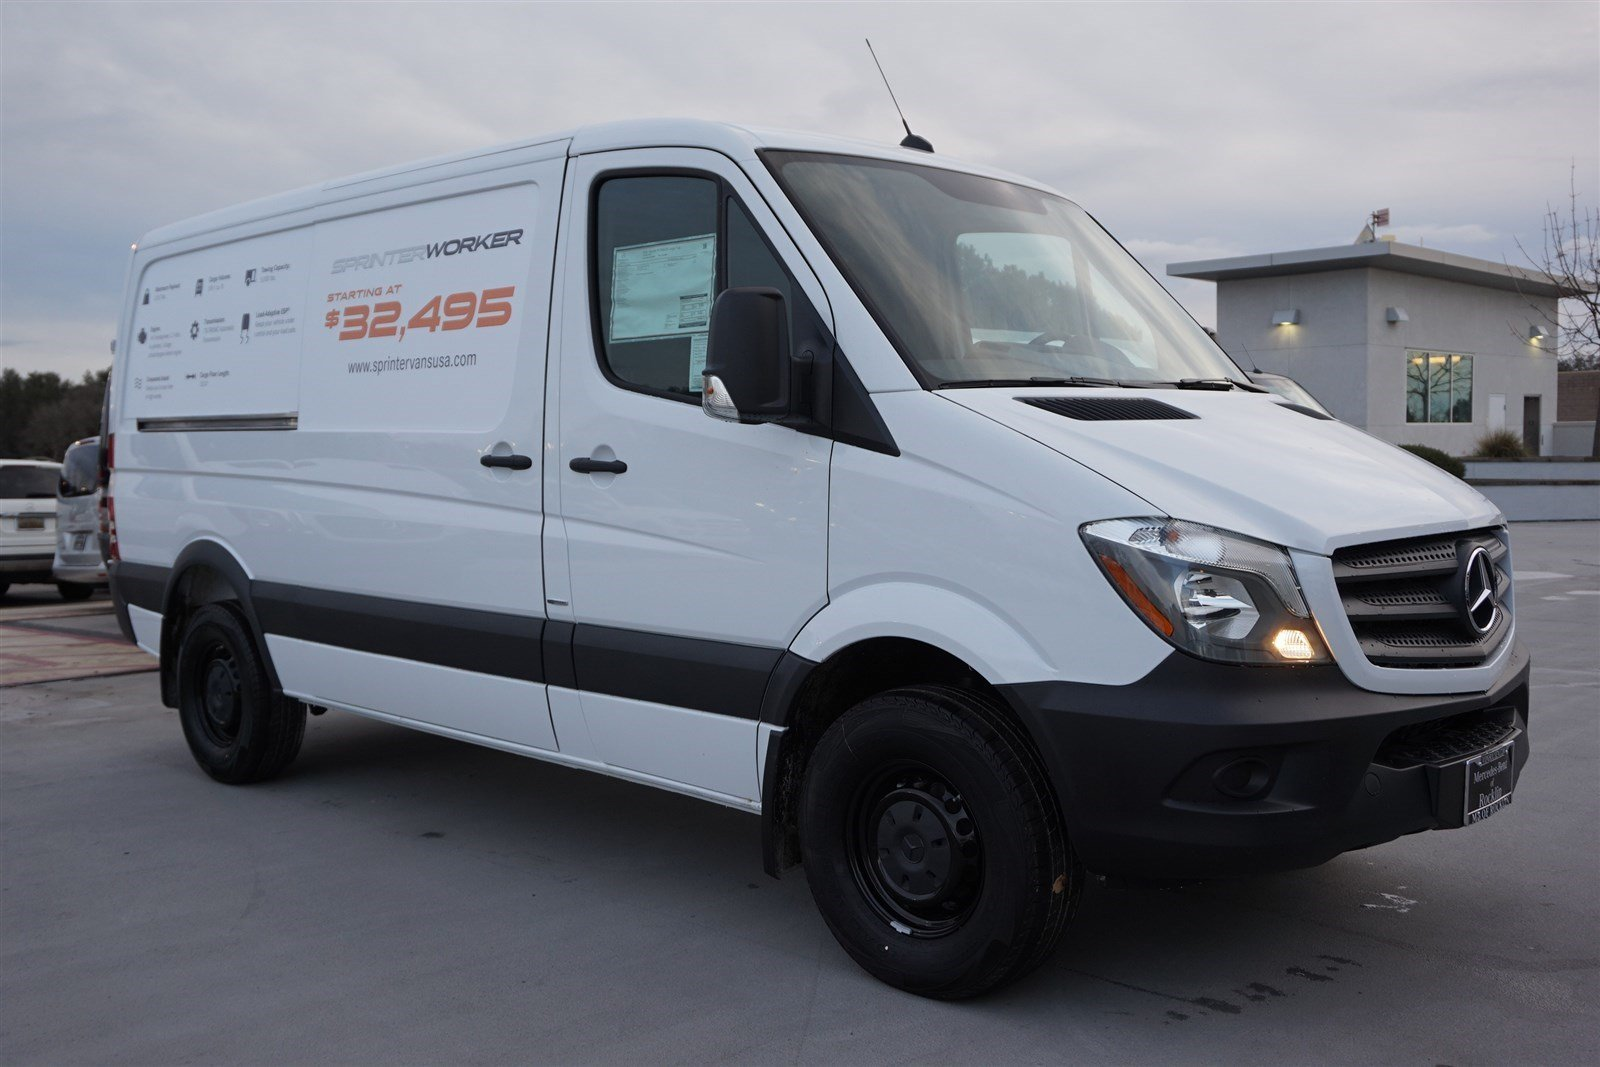 New 2016 mercedes benz sprinter cargo vans worker full for Mercedes benz sprinter cargo van